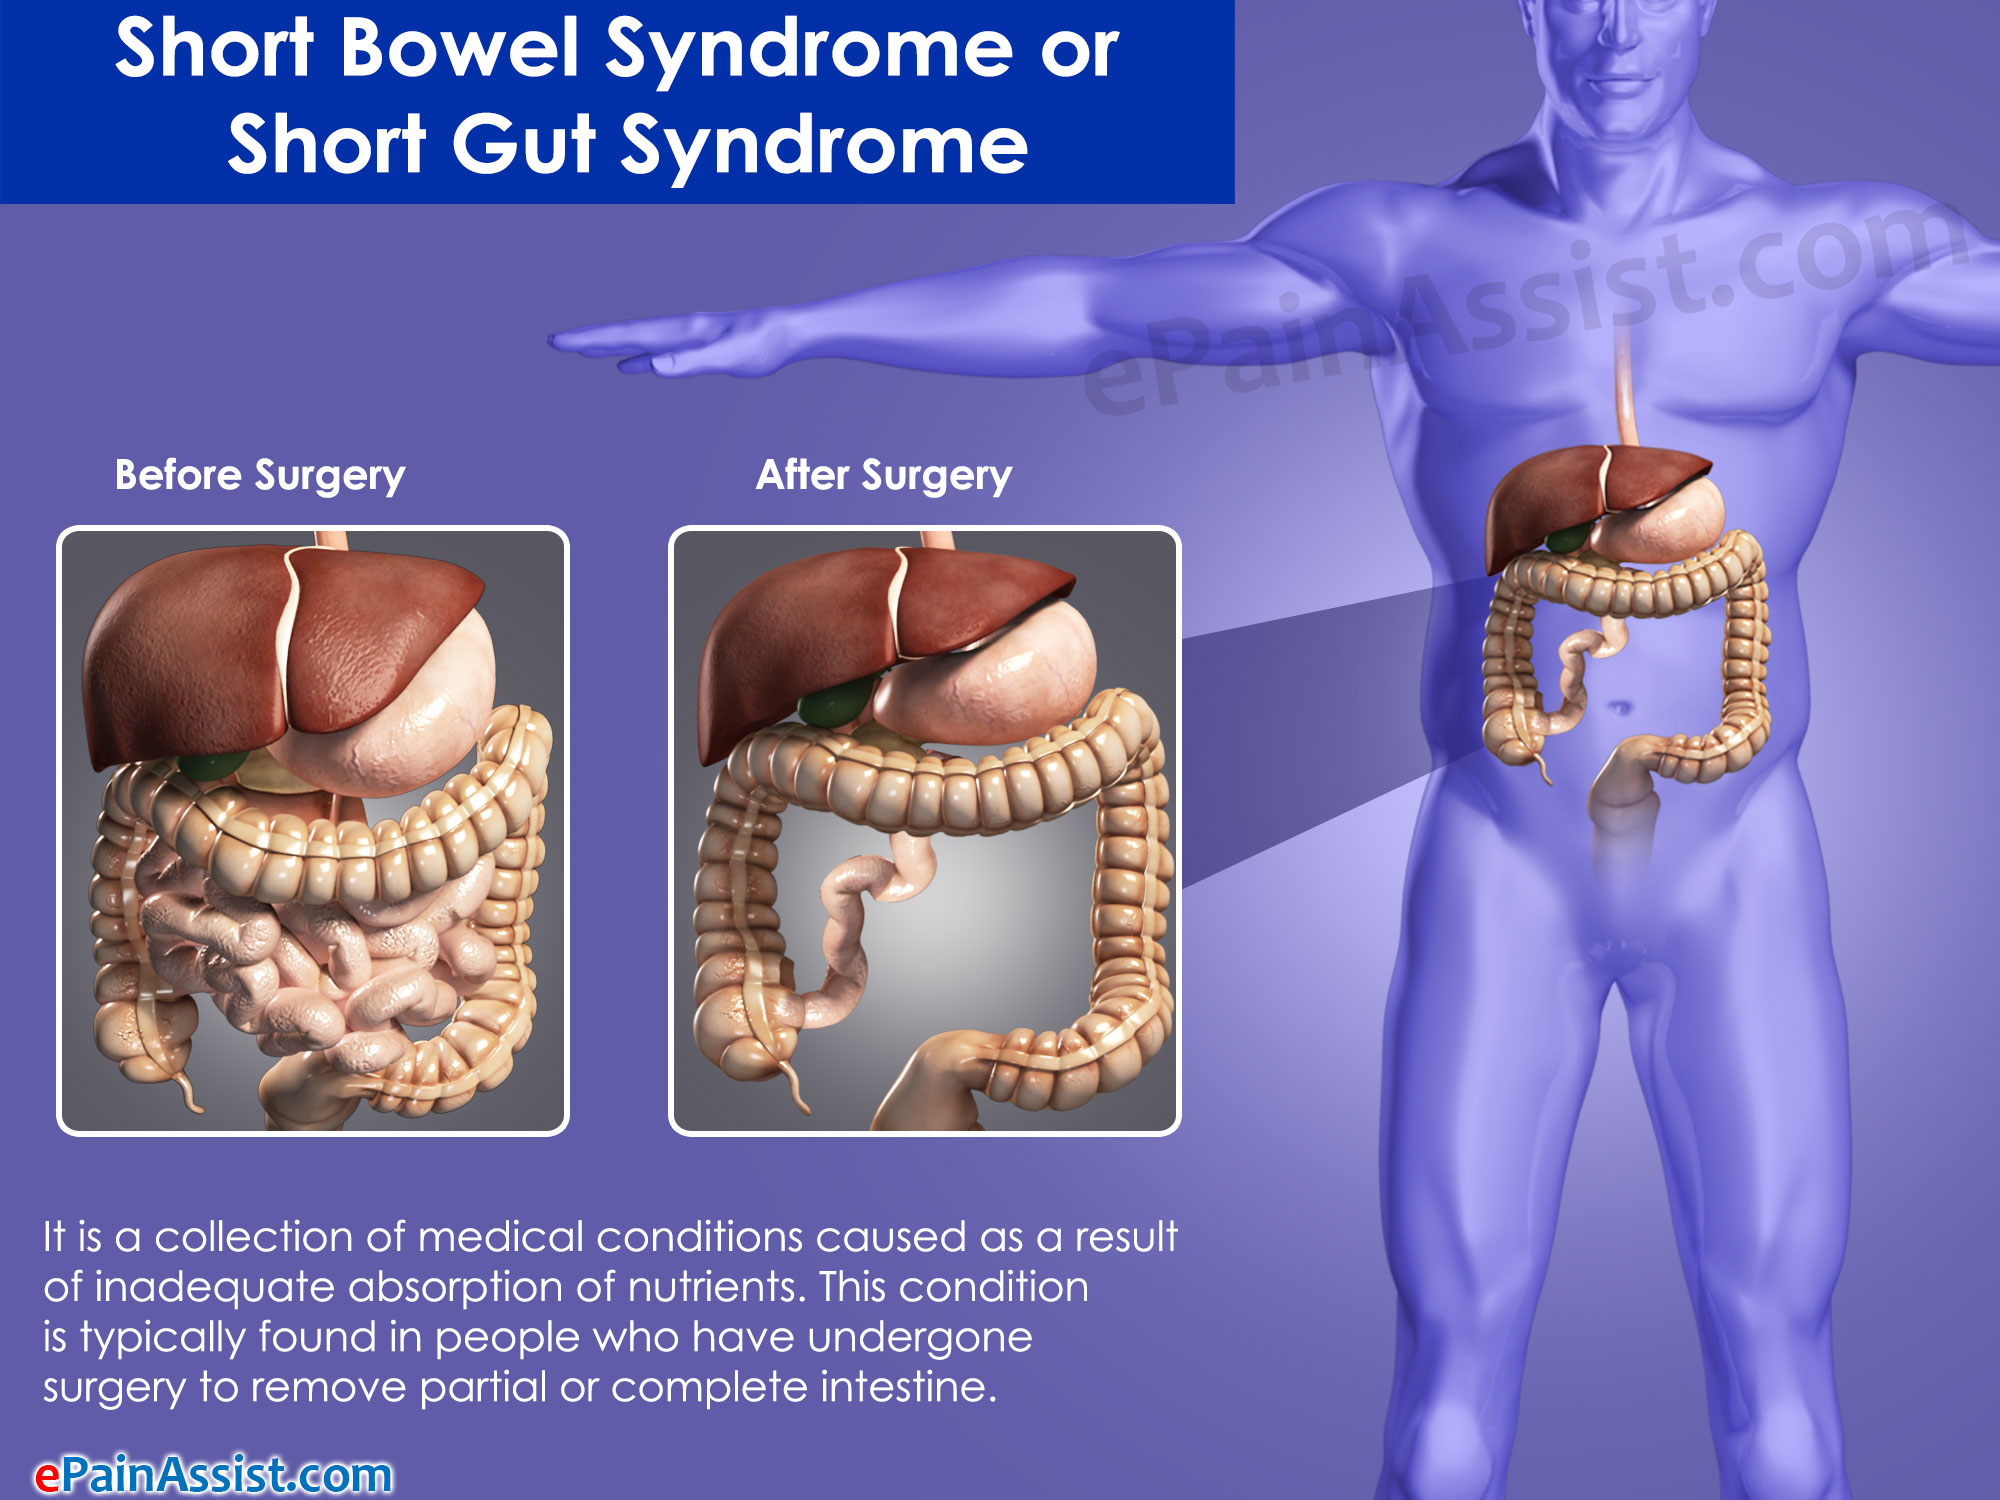 Symptoms Of Short Bowel Syndrome Or Short Gut Syndrome